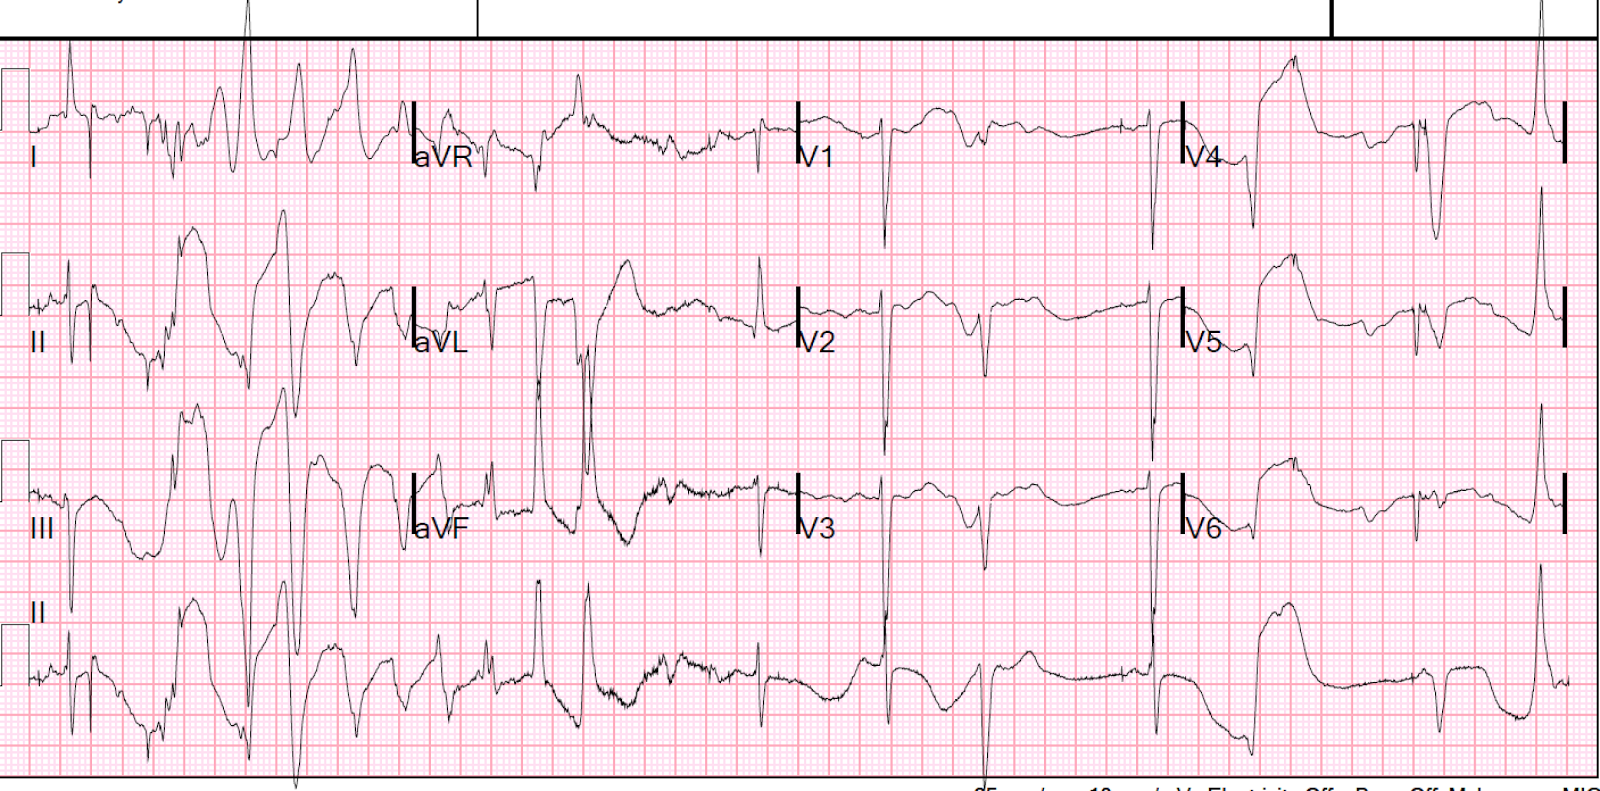 Dr. Smith's ECG Blog: Long QT Syndrome with Continuously Recurrent Polymorphic VT: Management